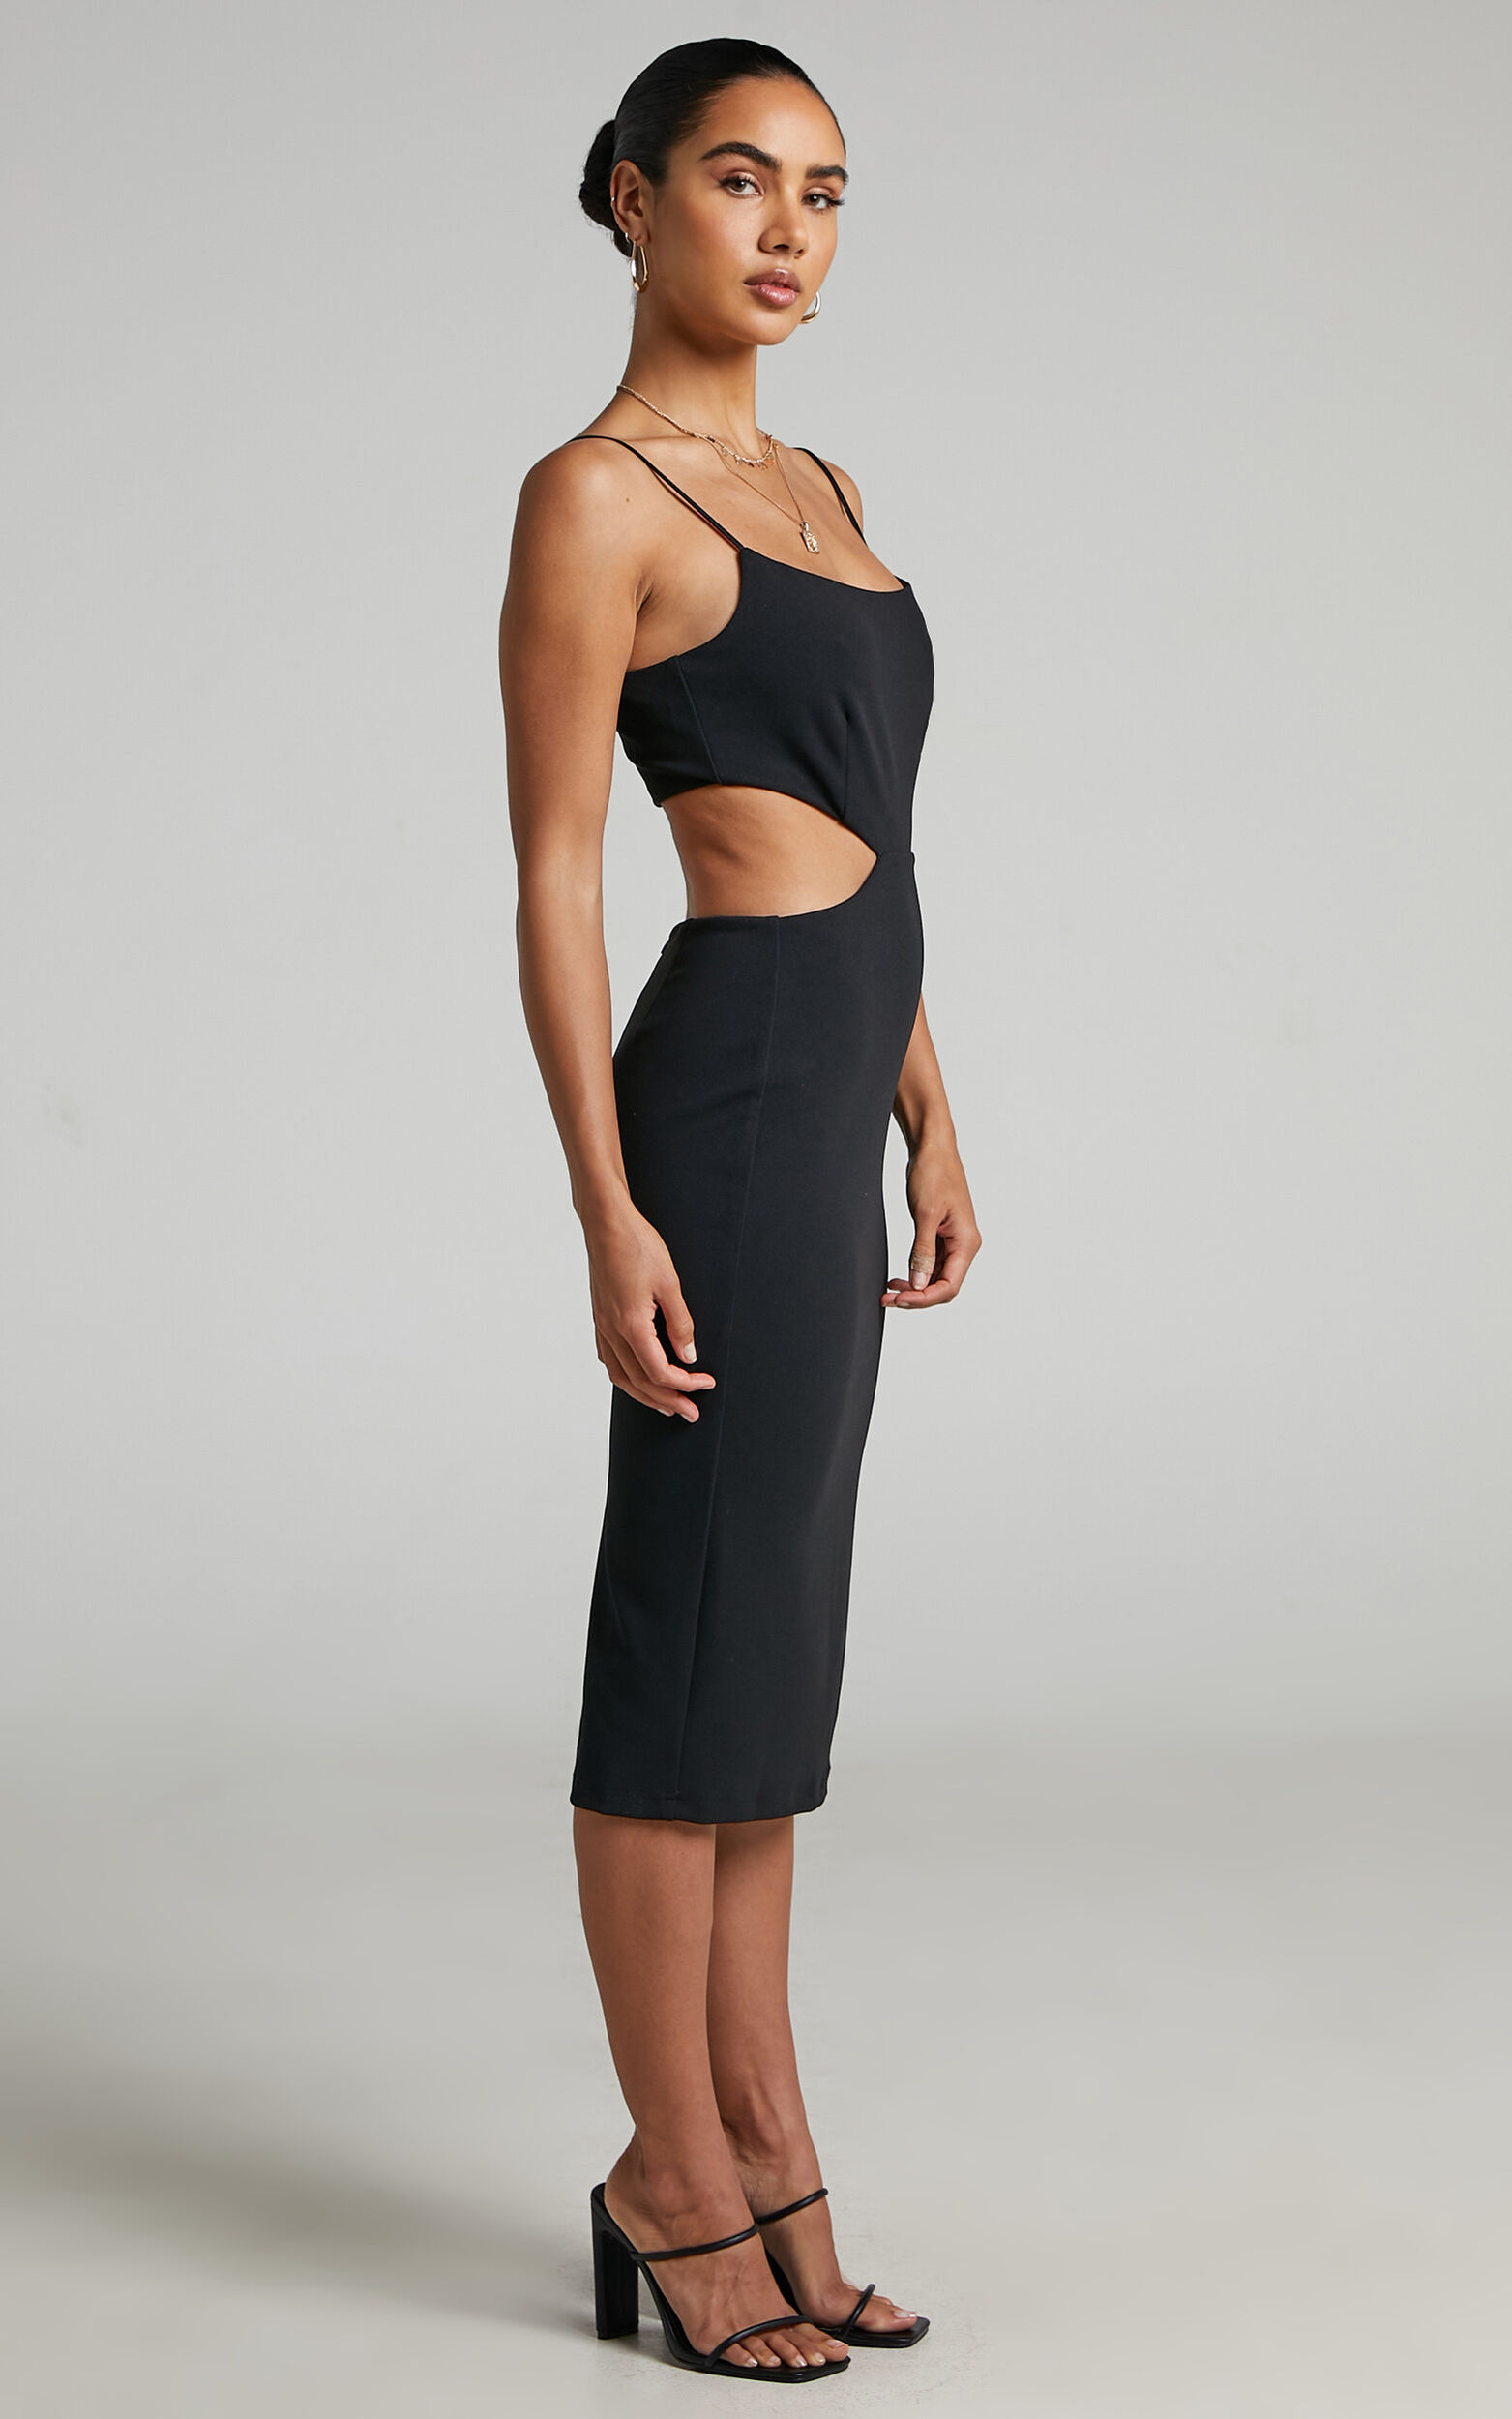 Honalei Cut out midi dress in Black - 04, BLK1, super-hi-res image number null